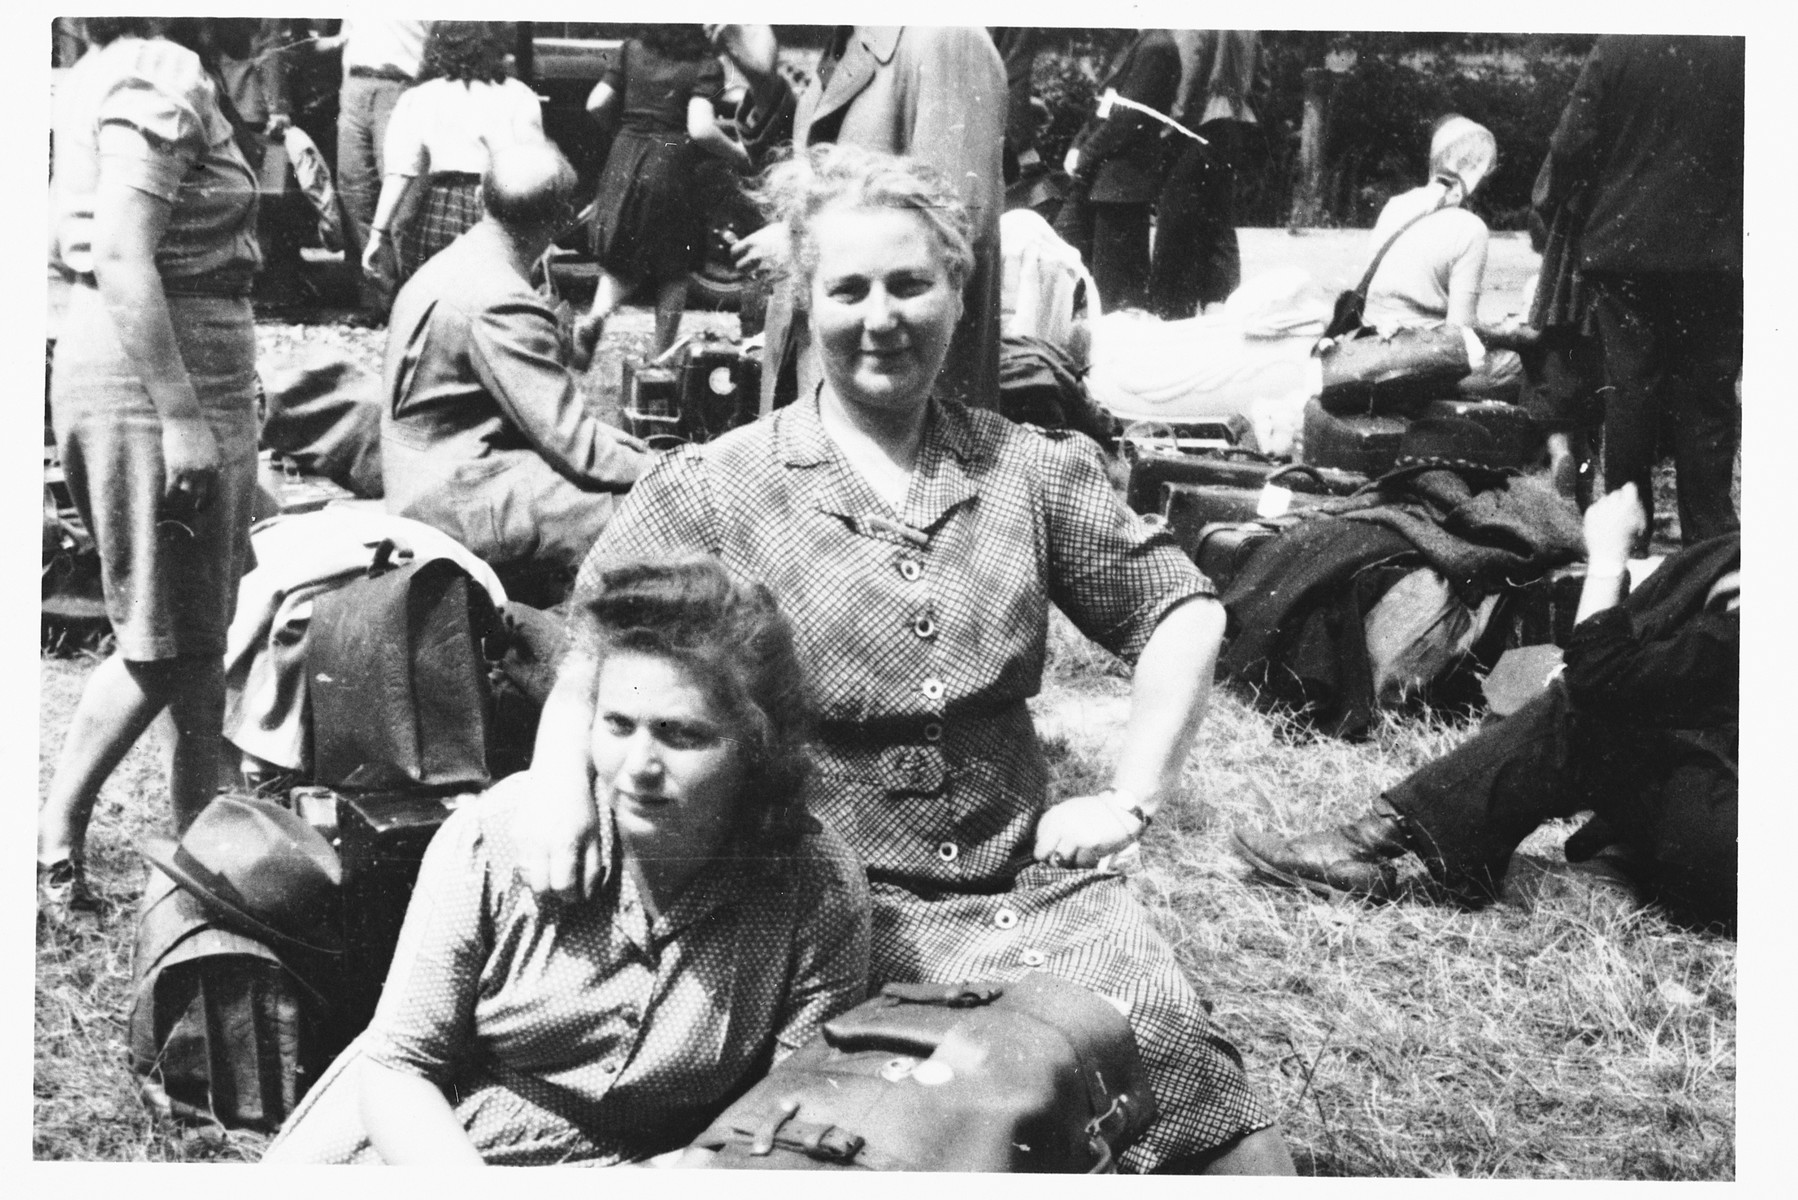 Jewish DPs wait at an assembly point with their luggage to board the Marine Perch to sail to America.   Pictured are Erika Mannheimer (b. 1923 Bad Wildungen, Germany) and her mother, Lina Mannheimer nee Lilienstein (b. 1892 Gossfelden, Marburg, Germany). Both survived Riga, Kaiserwald, and Stutthof.  Shmuel Shalkovsky, the donor of the image, was appointed by the JDC as an escort for the passage.